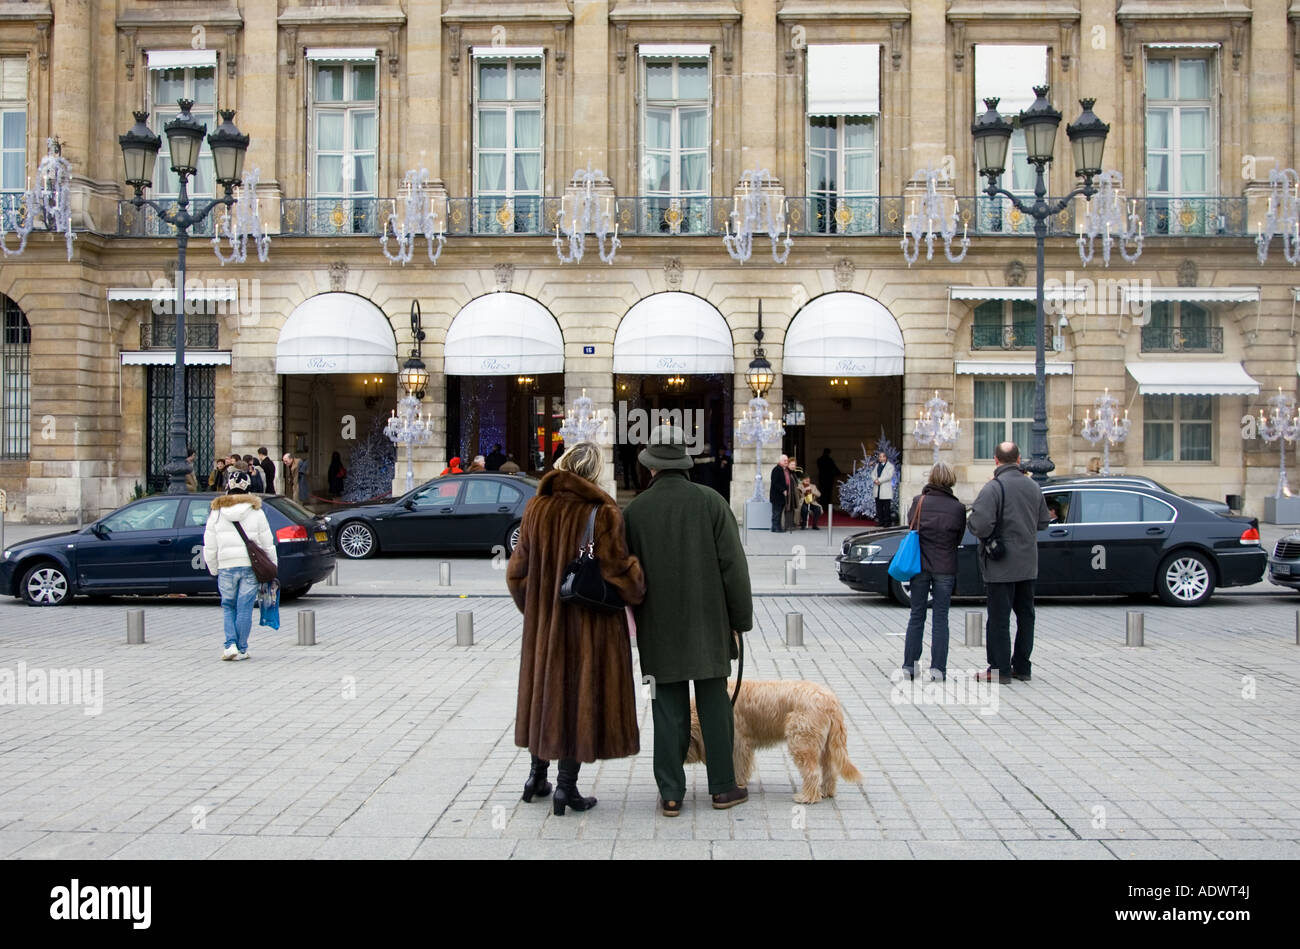 Couple with dog gaze at Ritz Hotel in Place Vendome Central Paris France - Stock Image